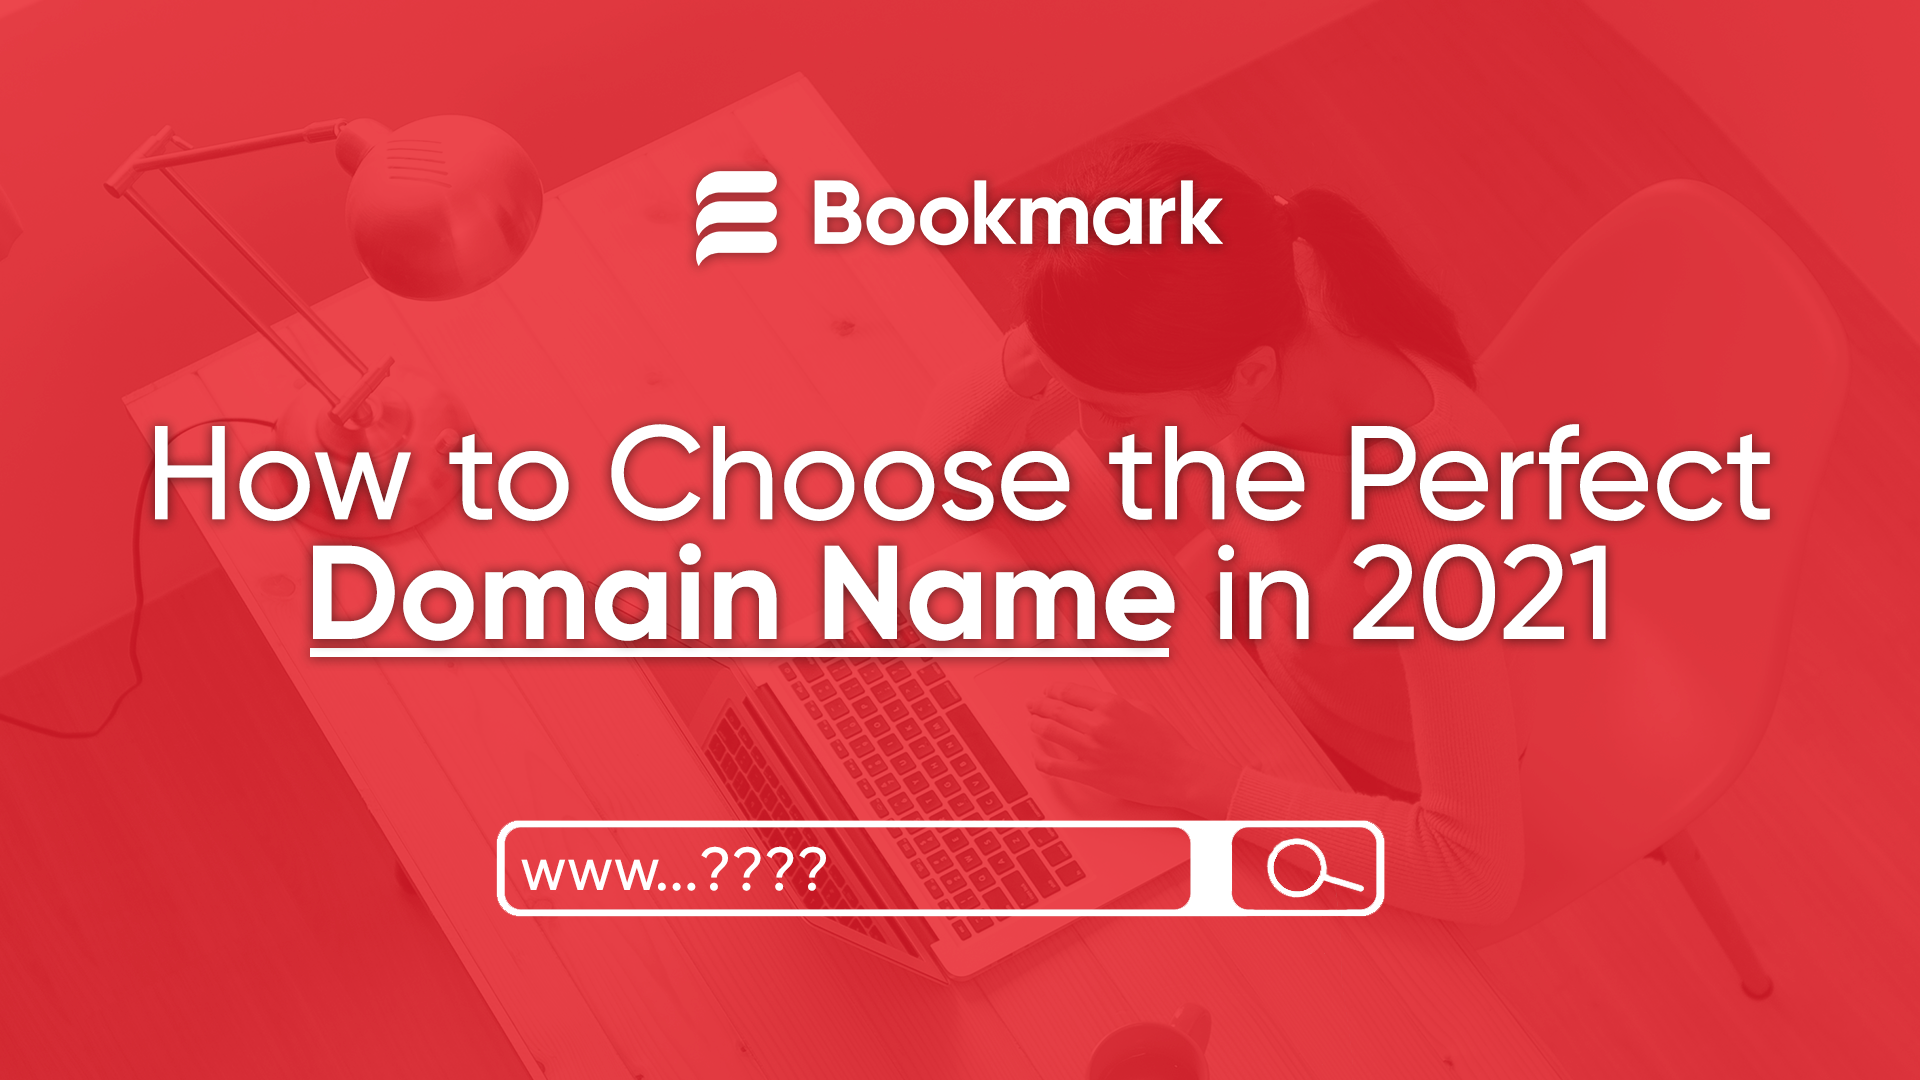 How to Choose the Perfect Domain Name in 2021